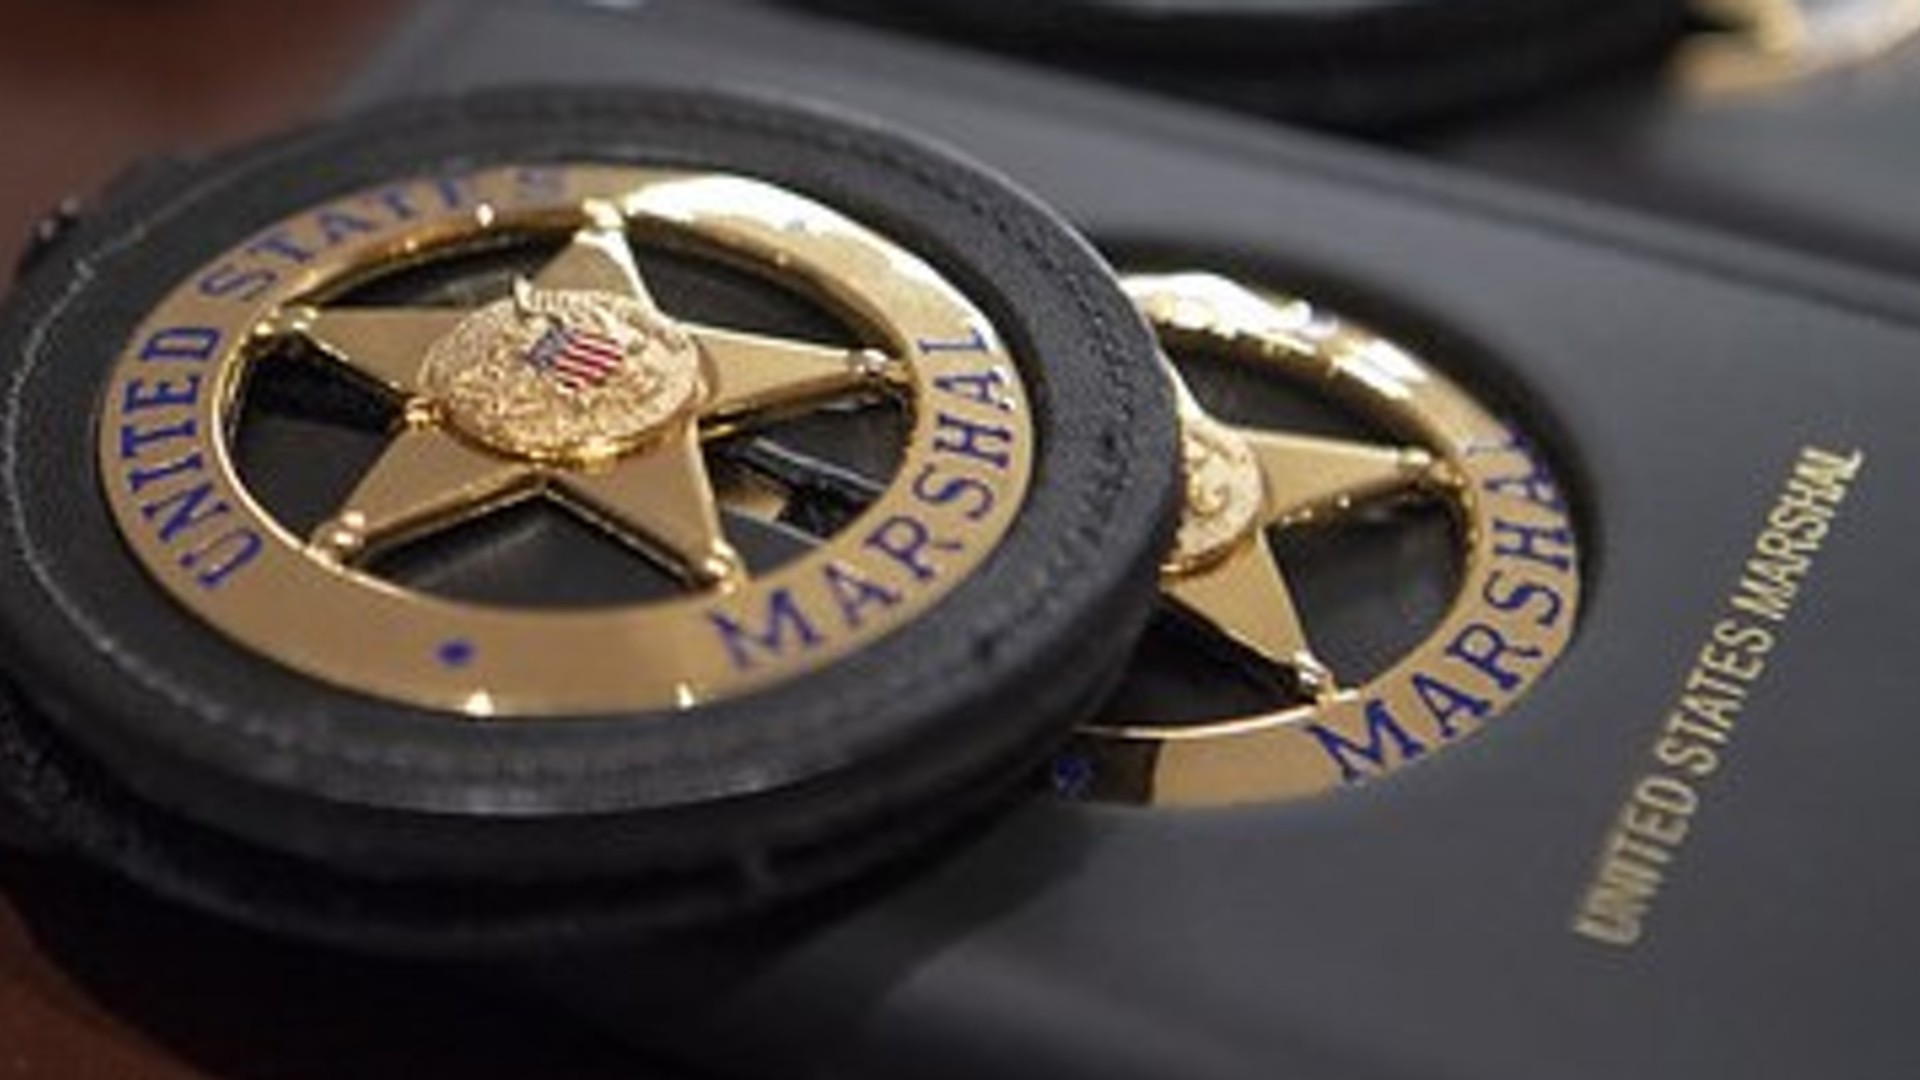 A U.S. Marshals badge is seen in a photo posted to the agency's Twitter page.